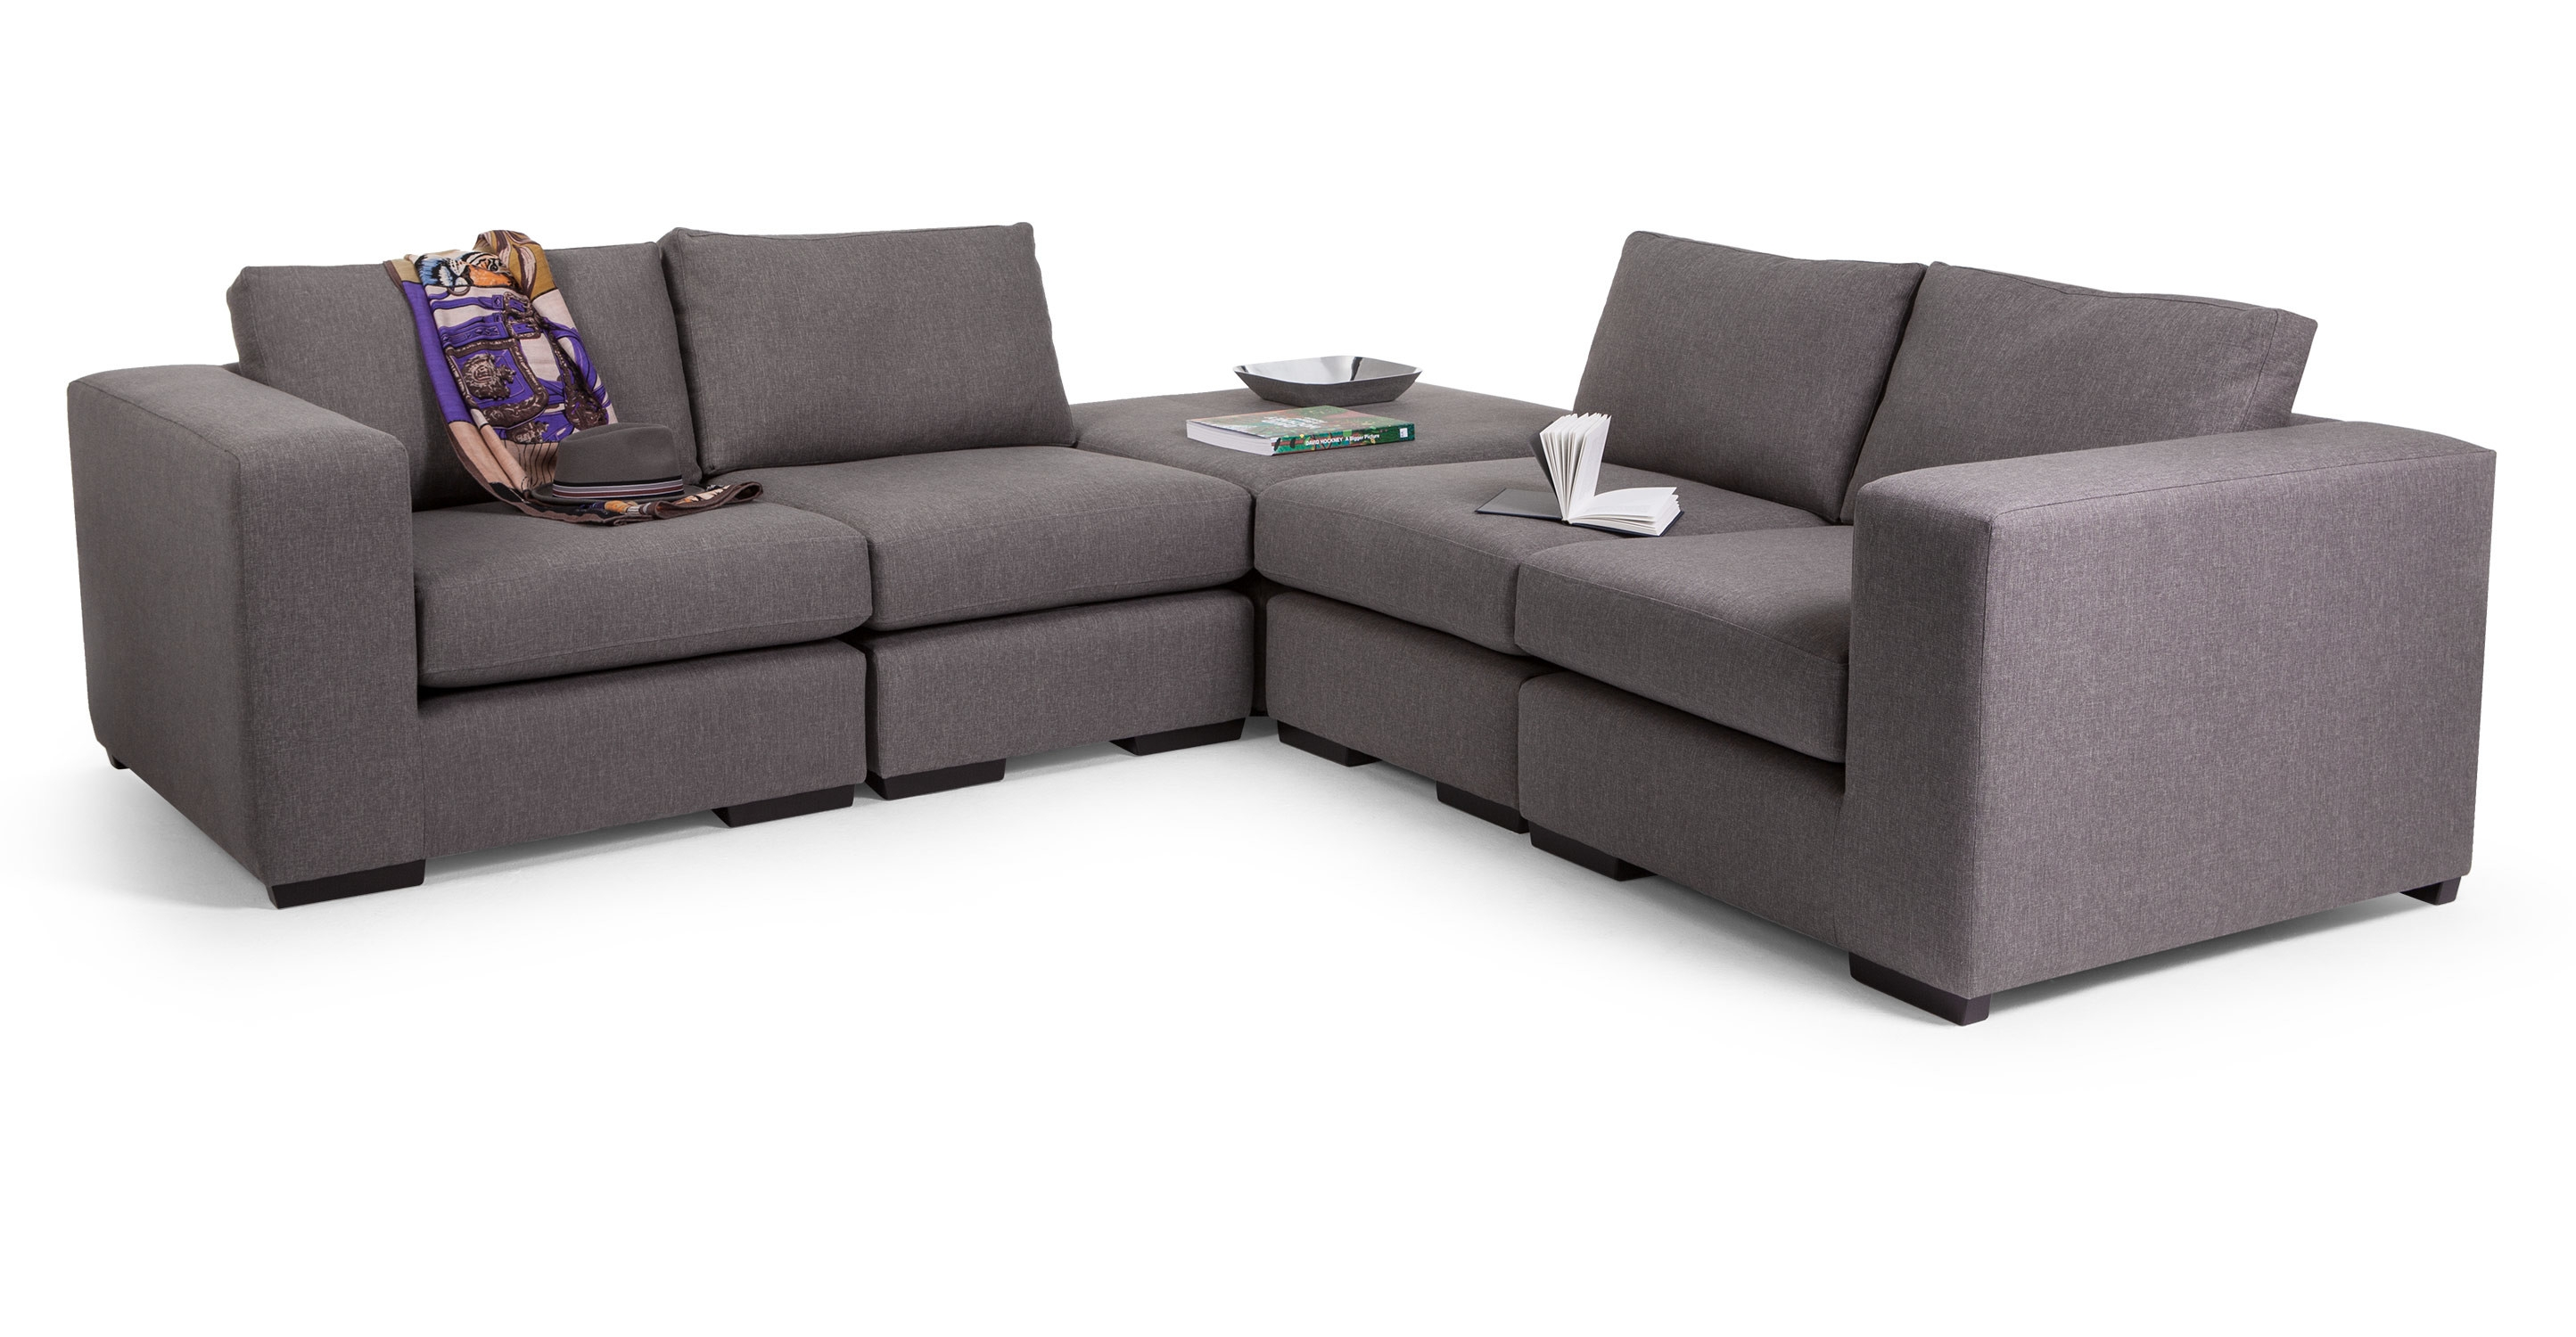 Featured Image of Modular Corner Sofas